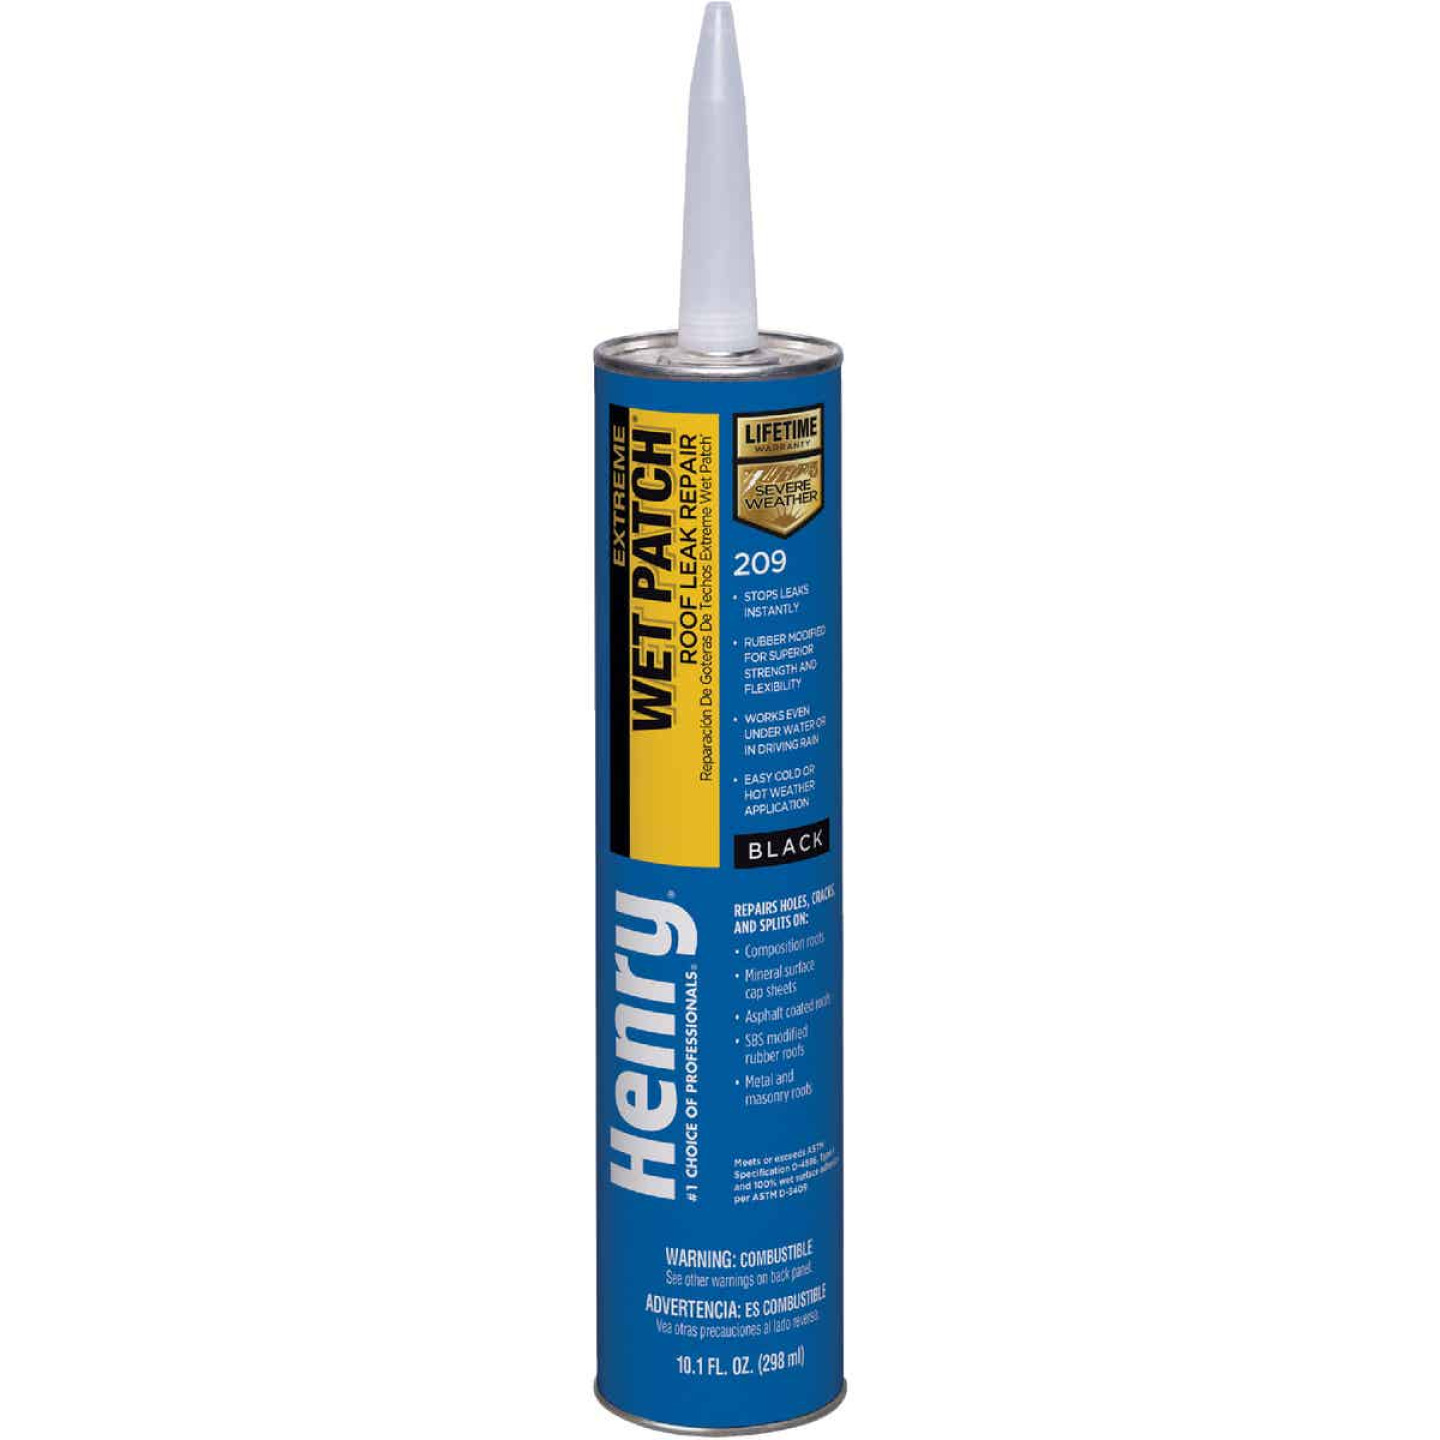 Henry Wet Patch 10.1 Oz. Extreme Roofing Cement & Patching Sealant Image 1